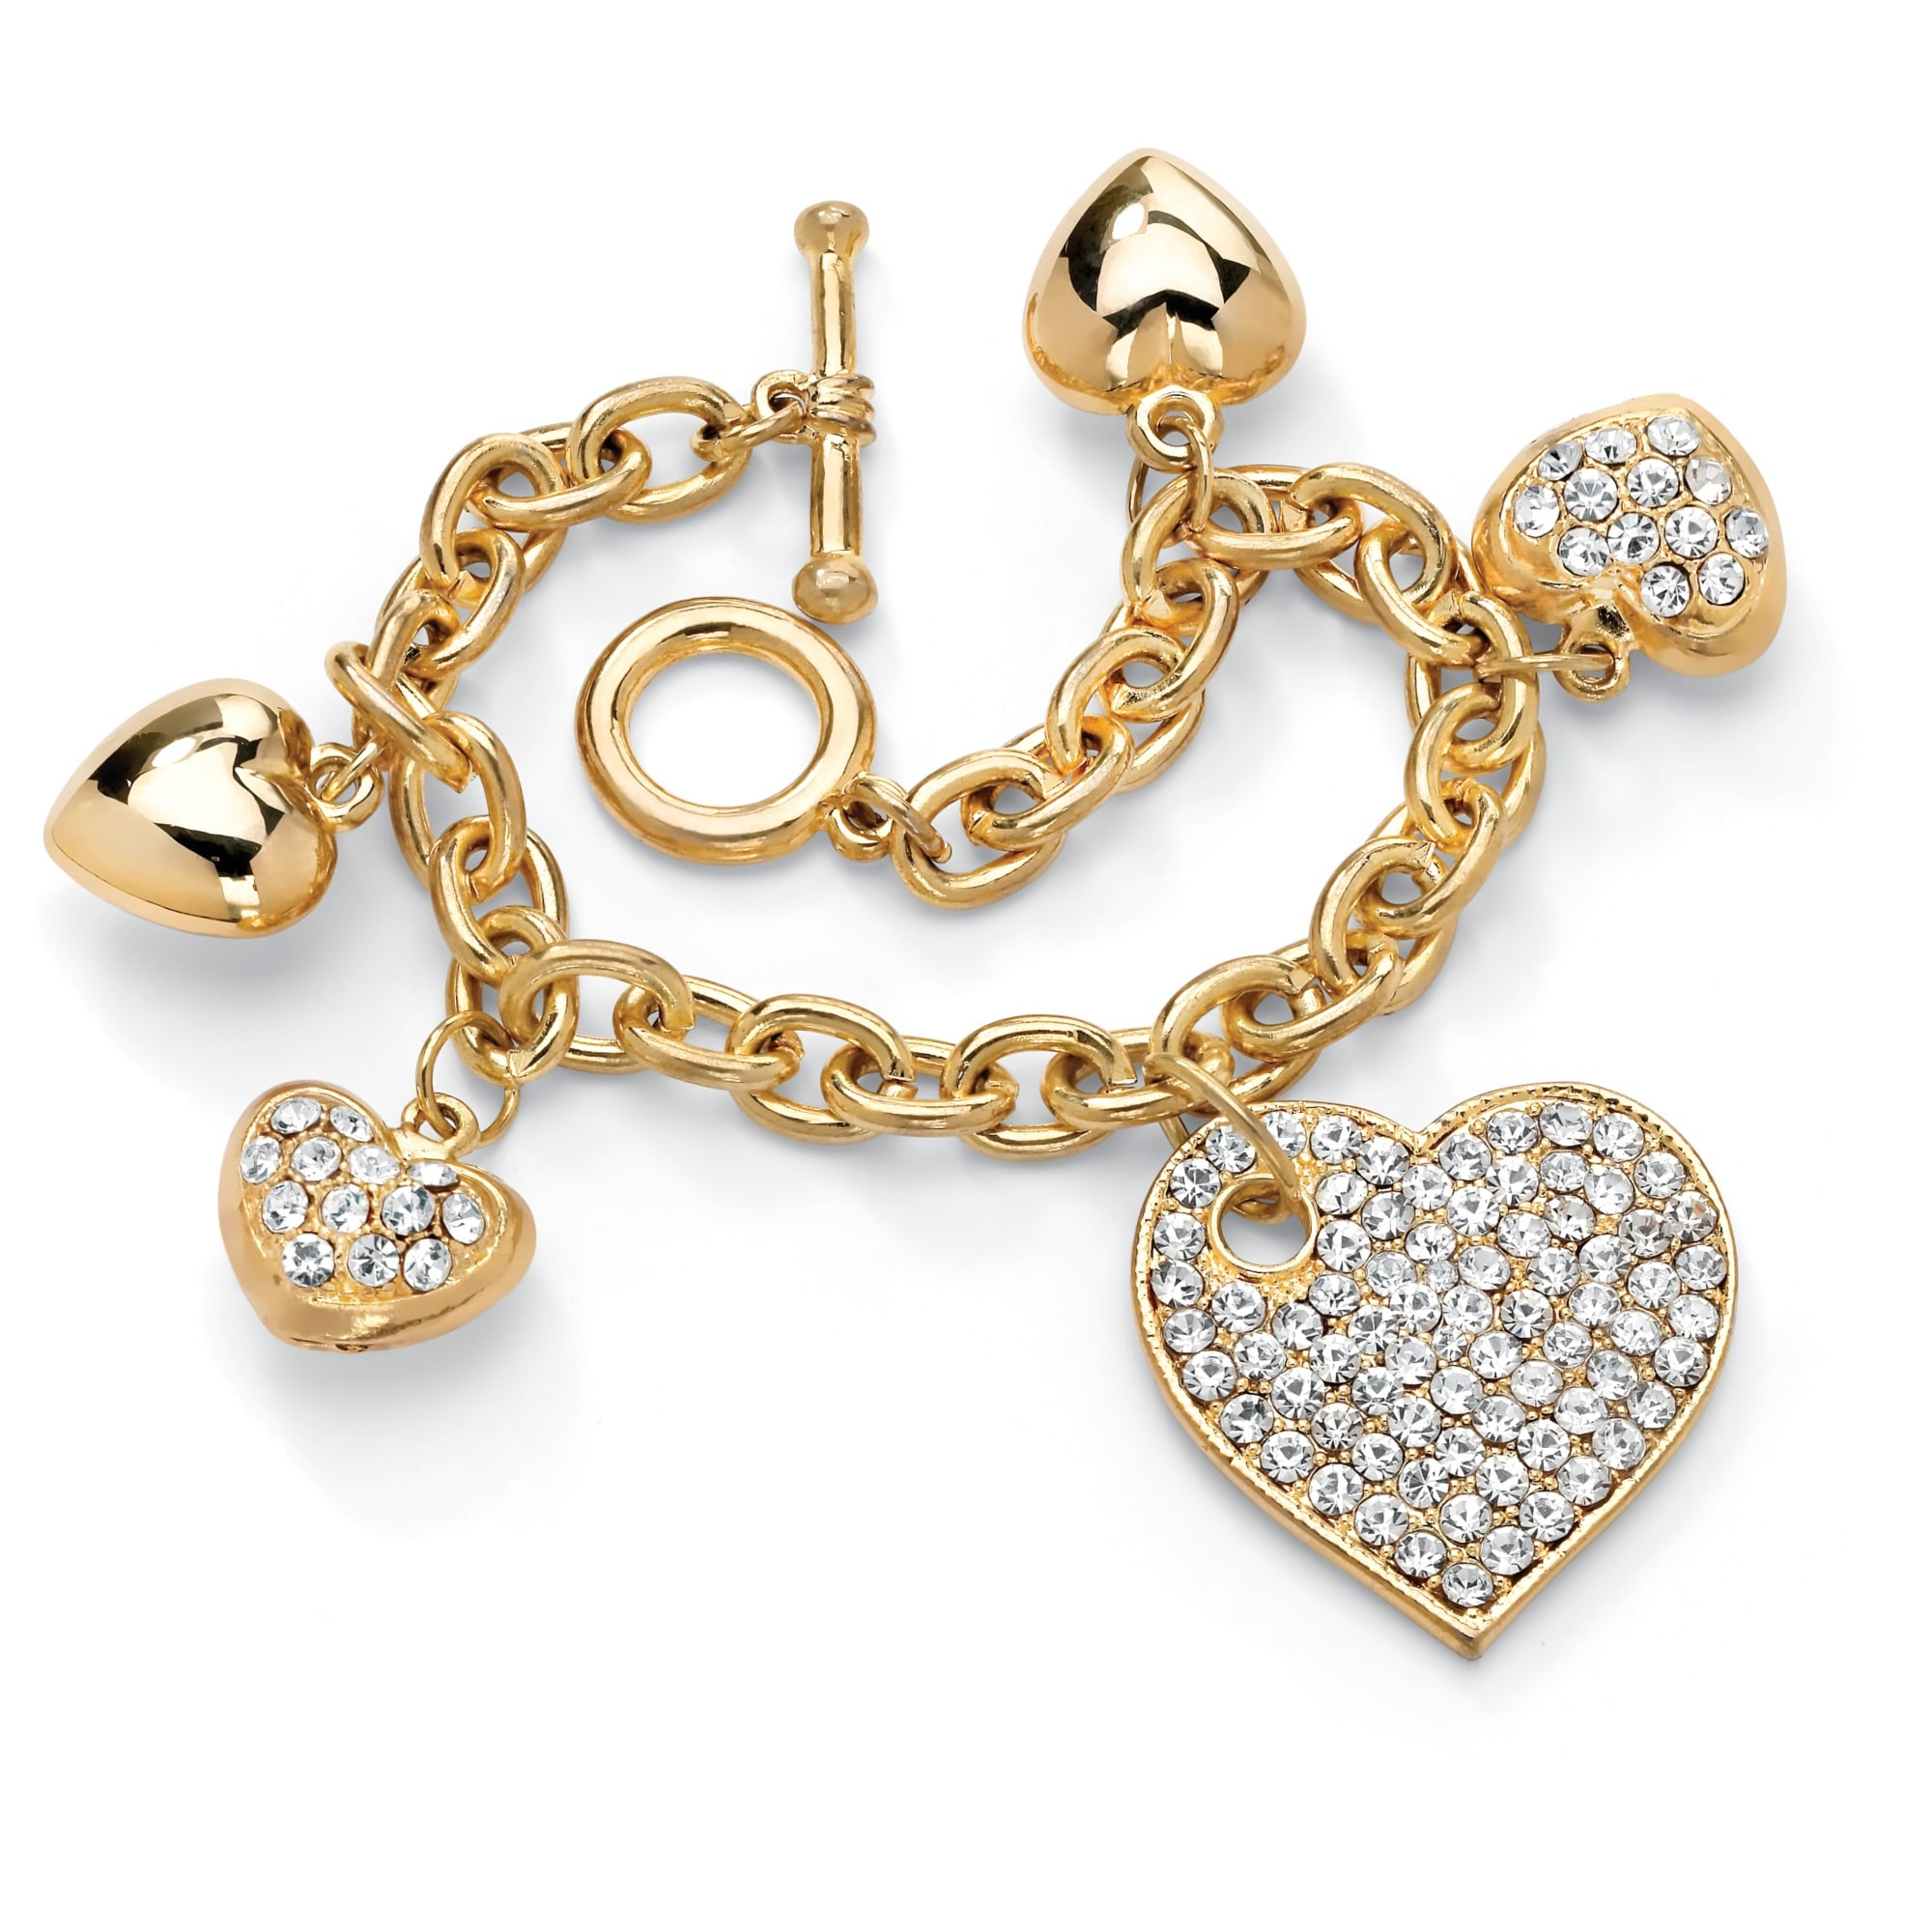 Overstock Jewelry Coupon Codes layoffider.ml sells Sterling Silver CZ Jewelry, Designer inspired Jewellery,Bridal and Wedding jewelry gifts, Cheap Discount Jewelers: Cubic Zirconia Rings Necklaces Bracelets Pendants Earrings.